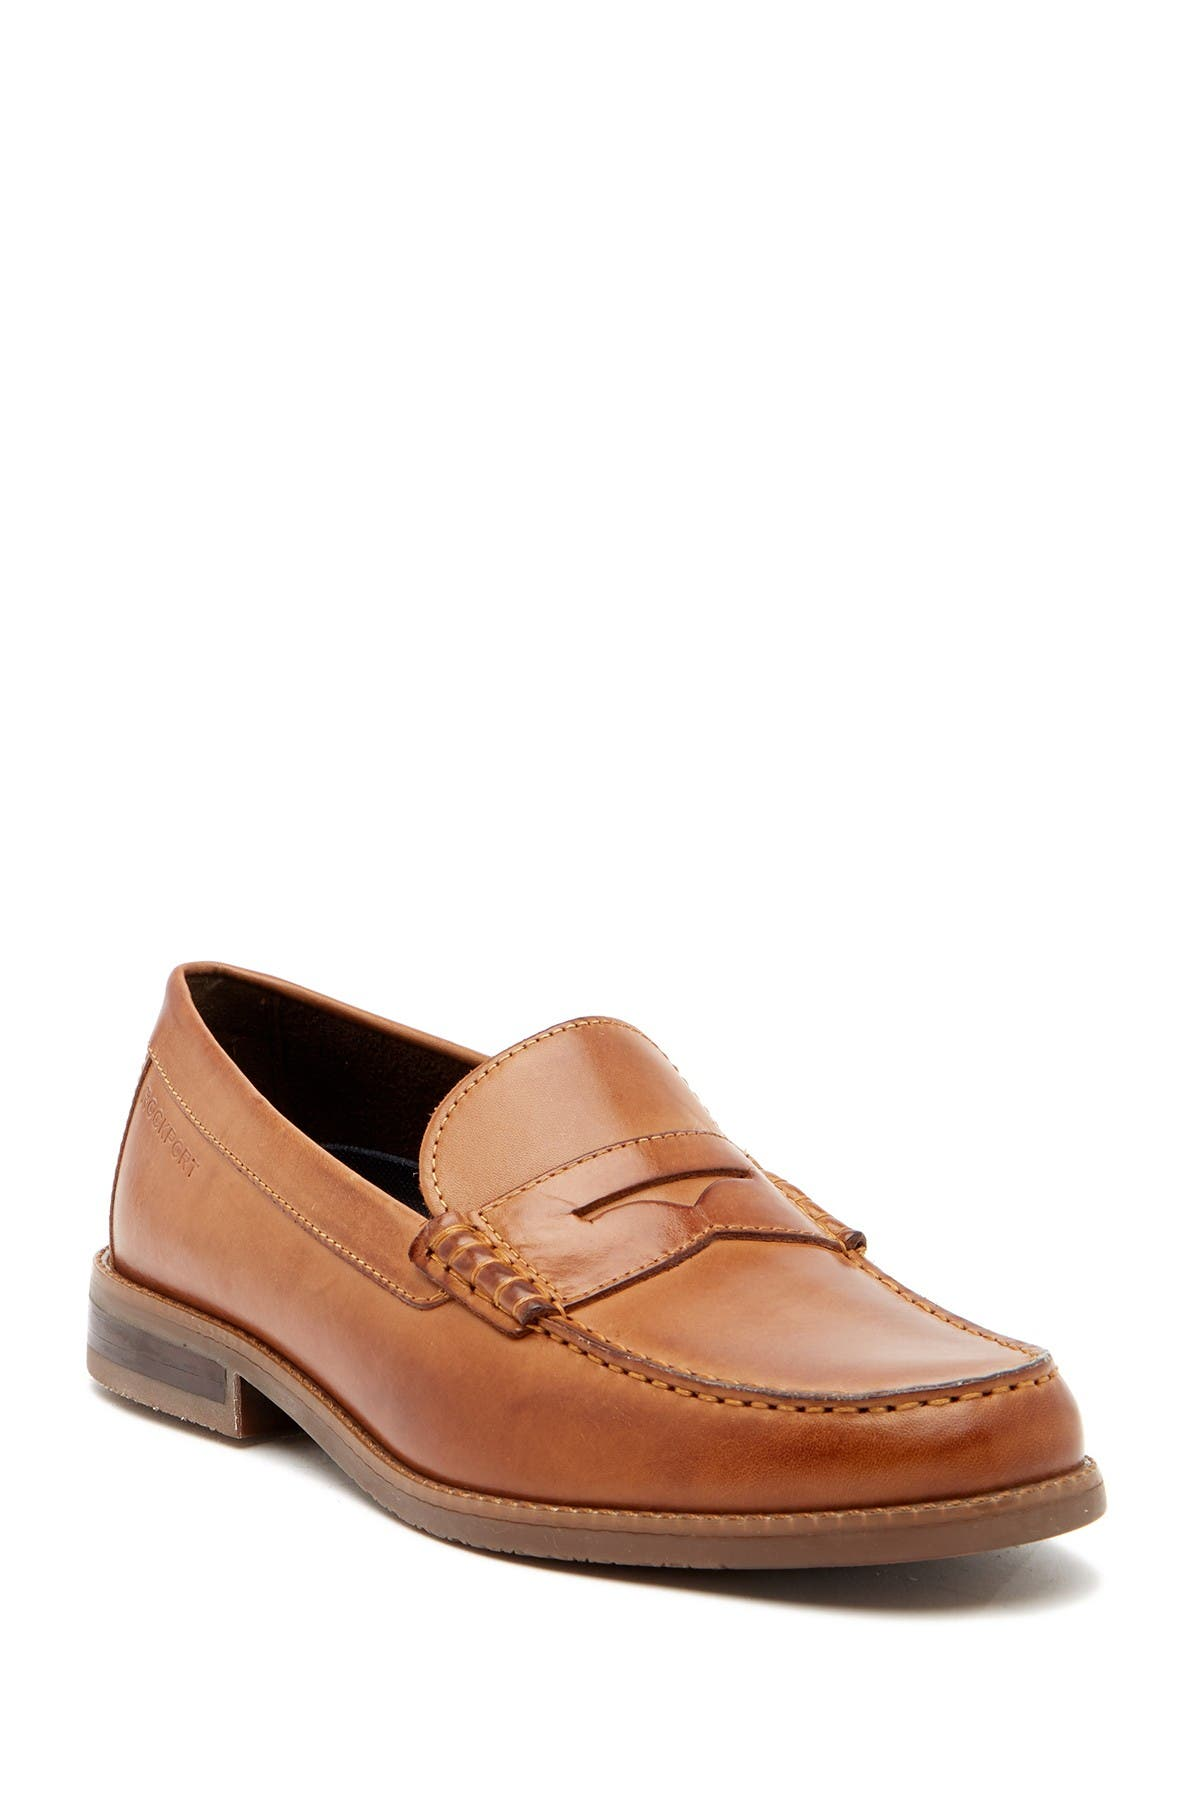 Image of Rockport Curtys Leather Penny Loafer - Wide Width Available